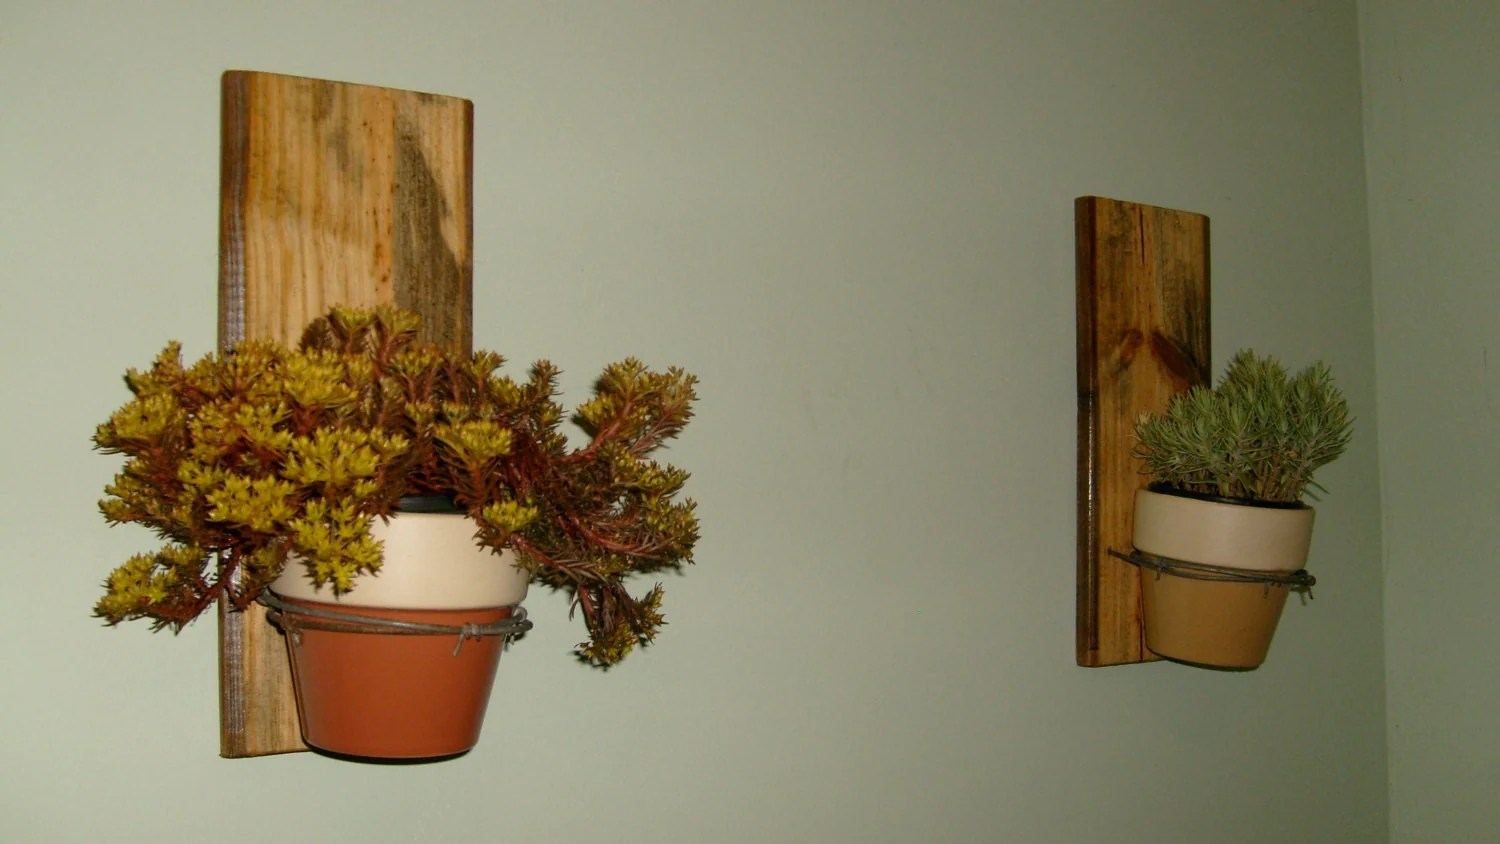 Wall Mounted Plant Holders Wall Hanging Plant Holders On Reclaimed Wood